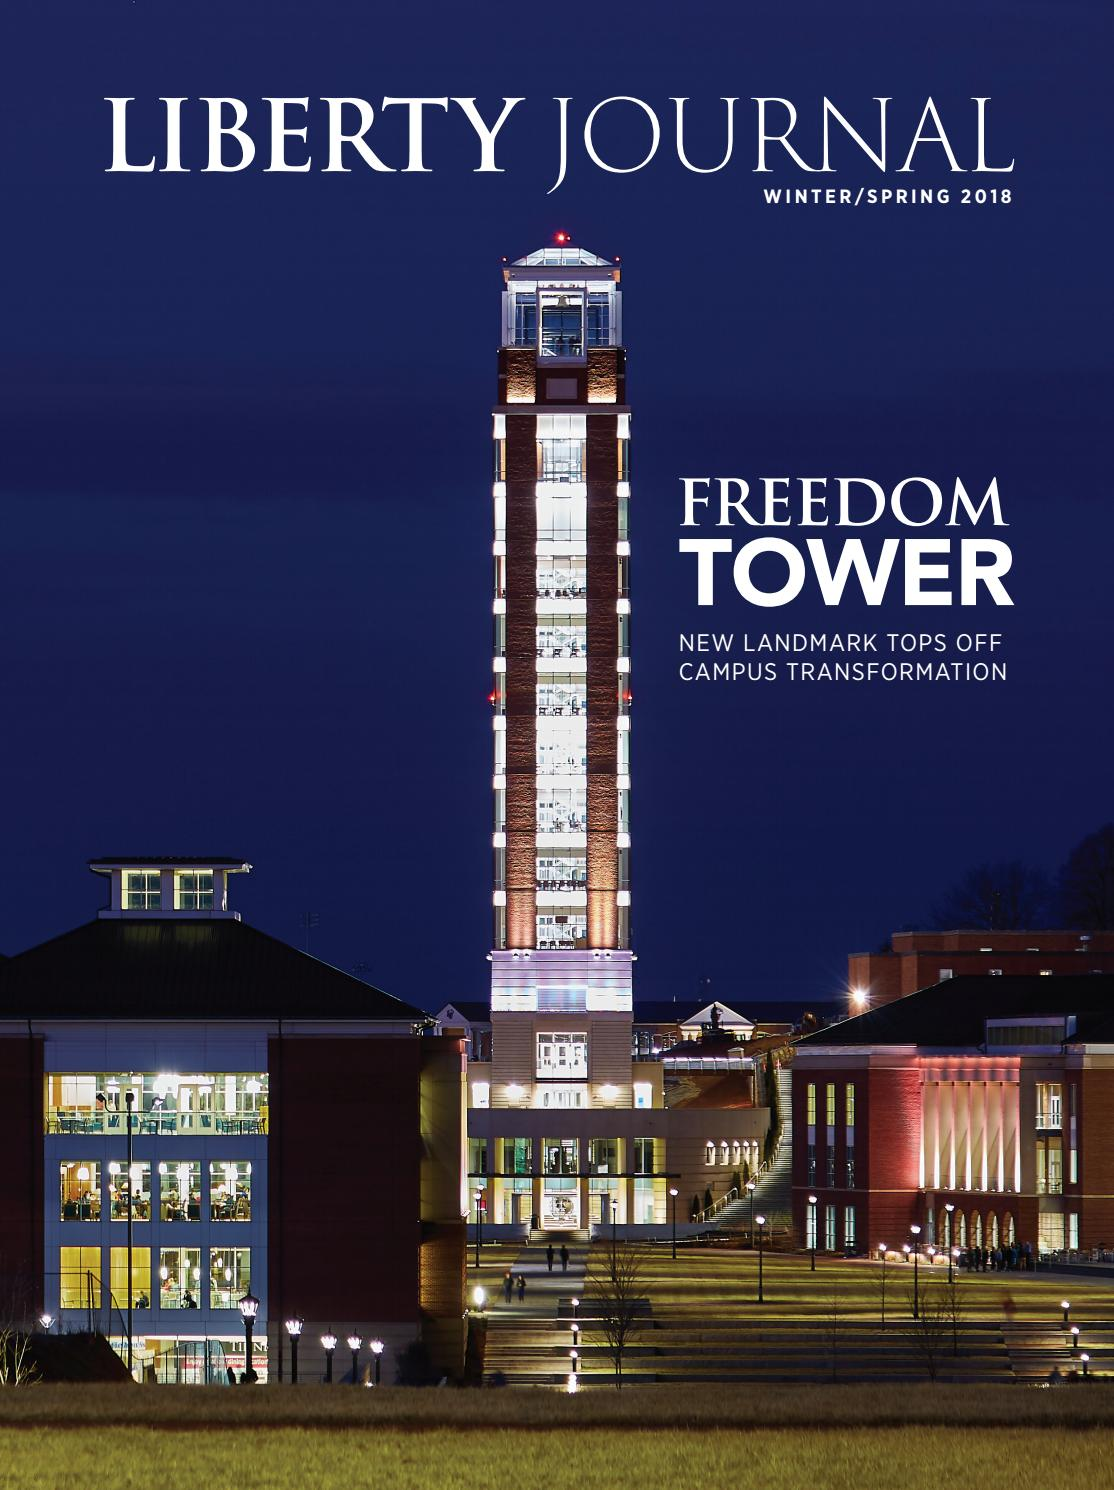 Liberty Journal Winter Spring 2018 by Liberty University - issuu 569bf2b31dc5a